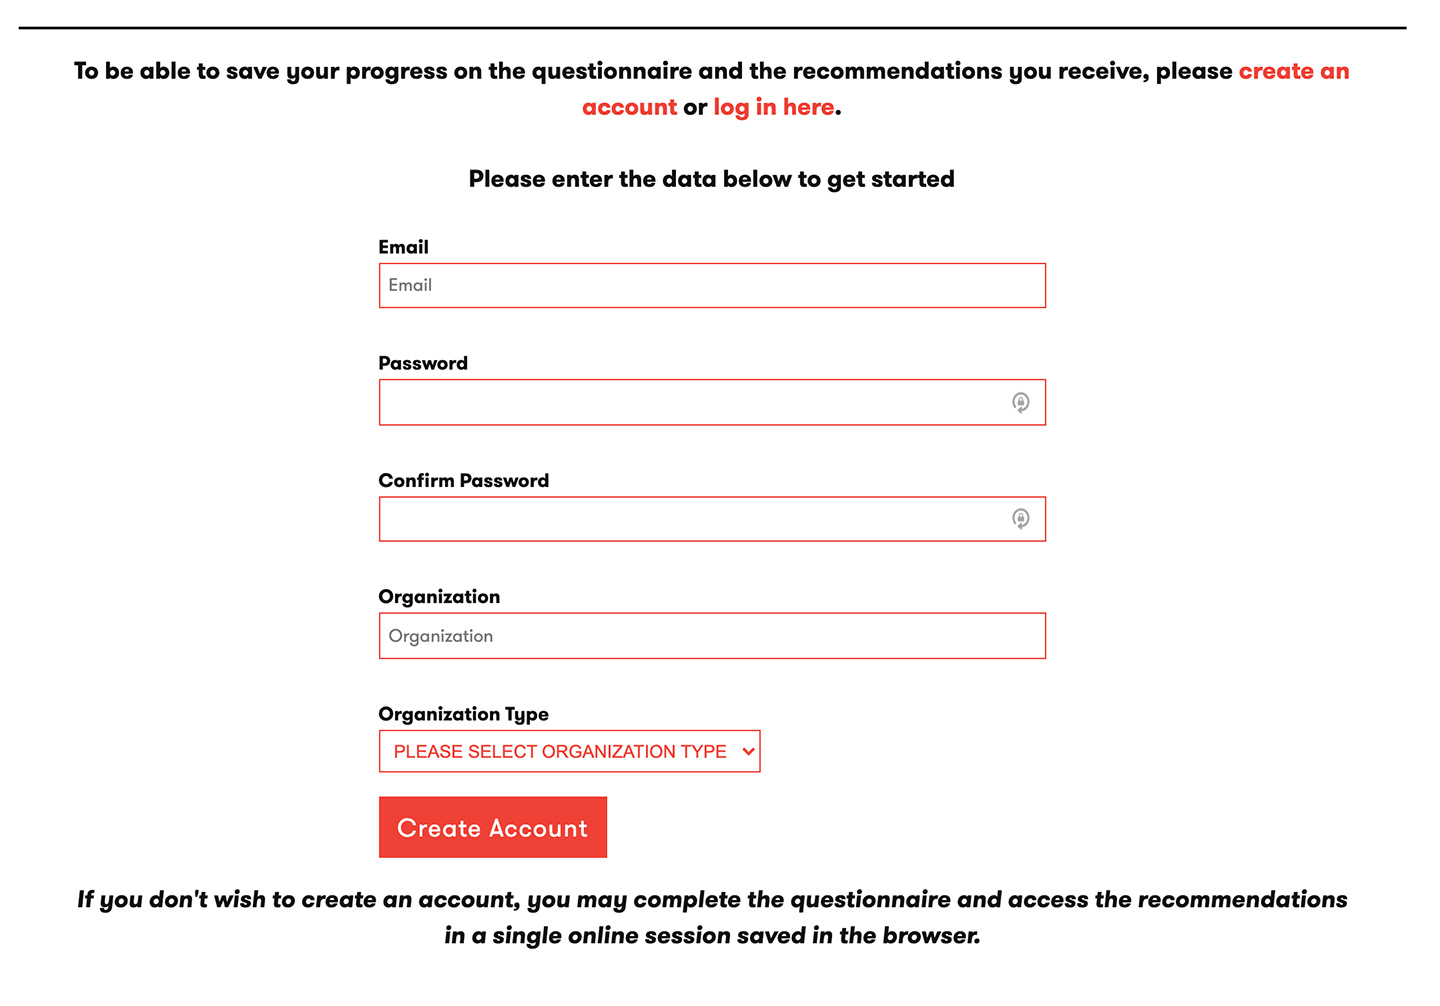 Restrictive Housing Assessment Tool from the Vera Institute of Justice: Restrictive Housing Assessment Tool - Account Creation